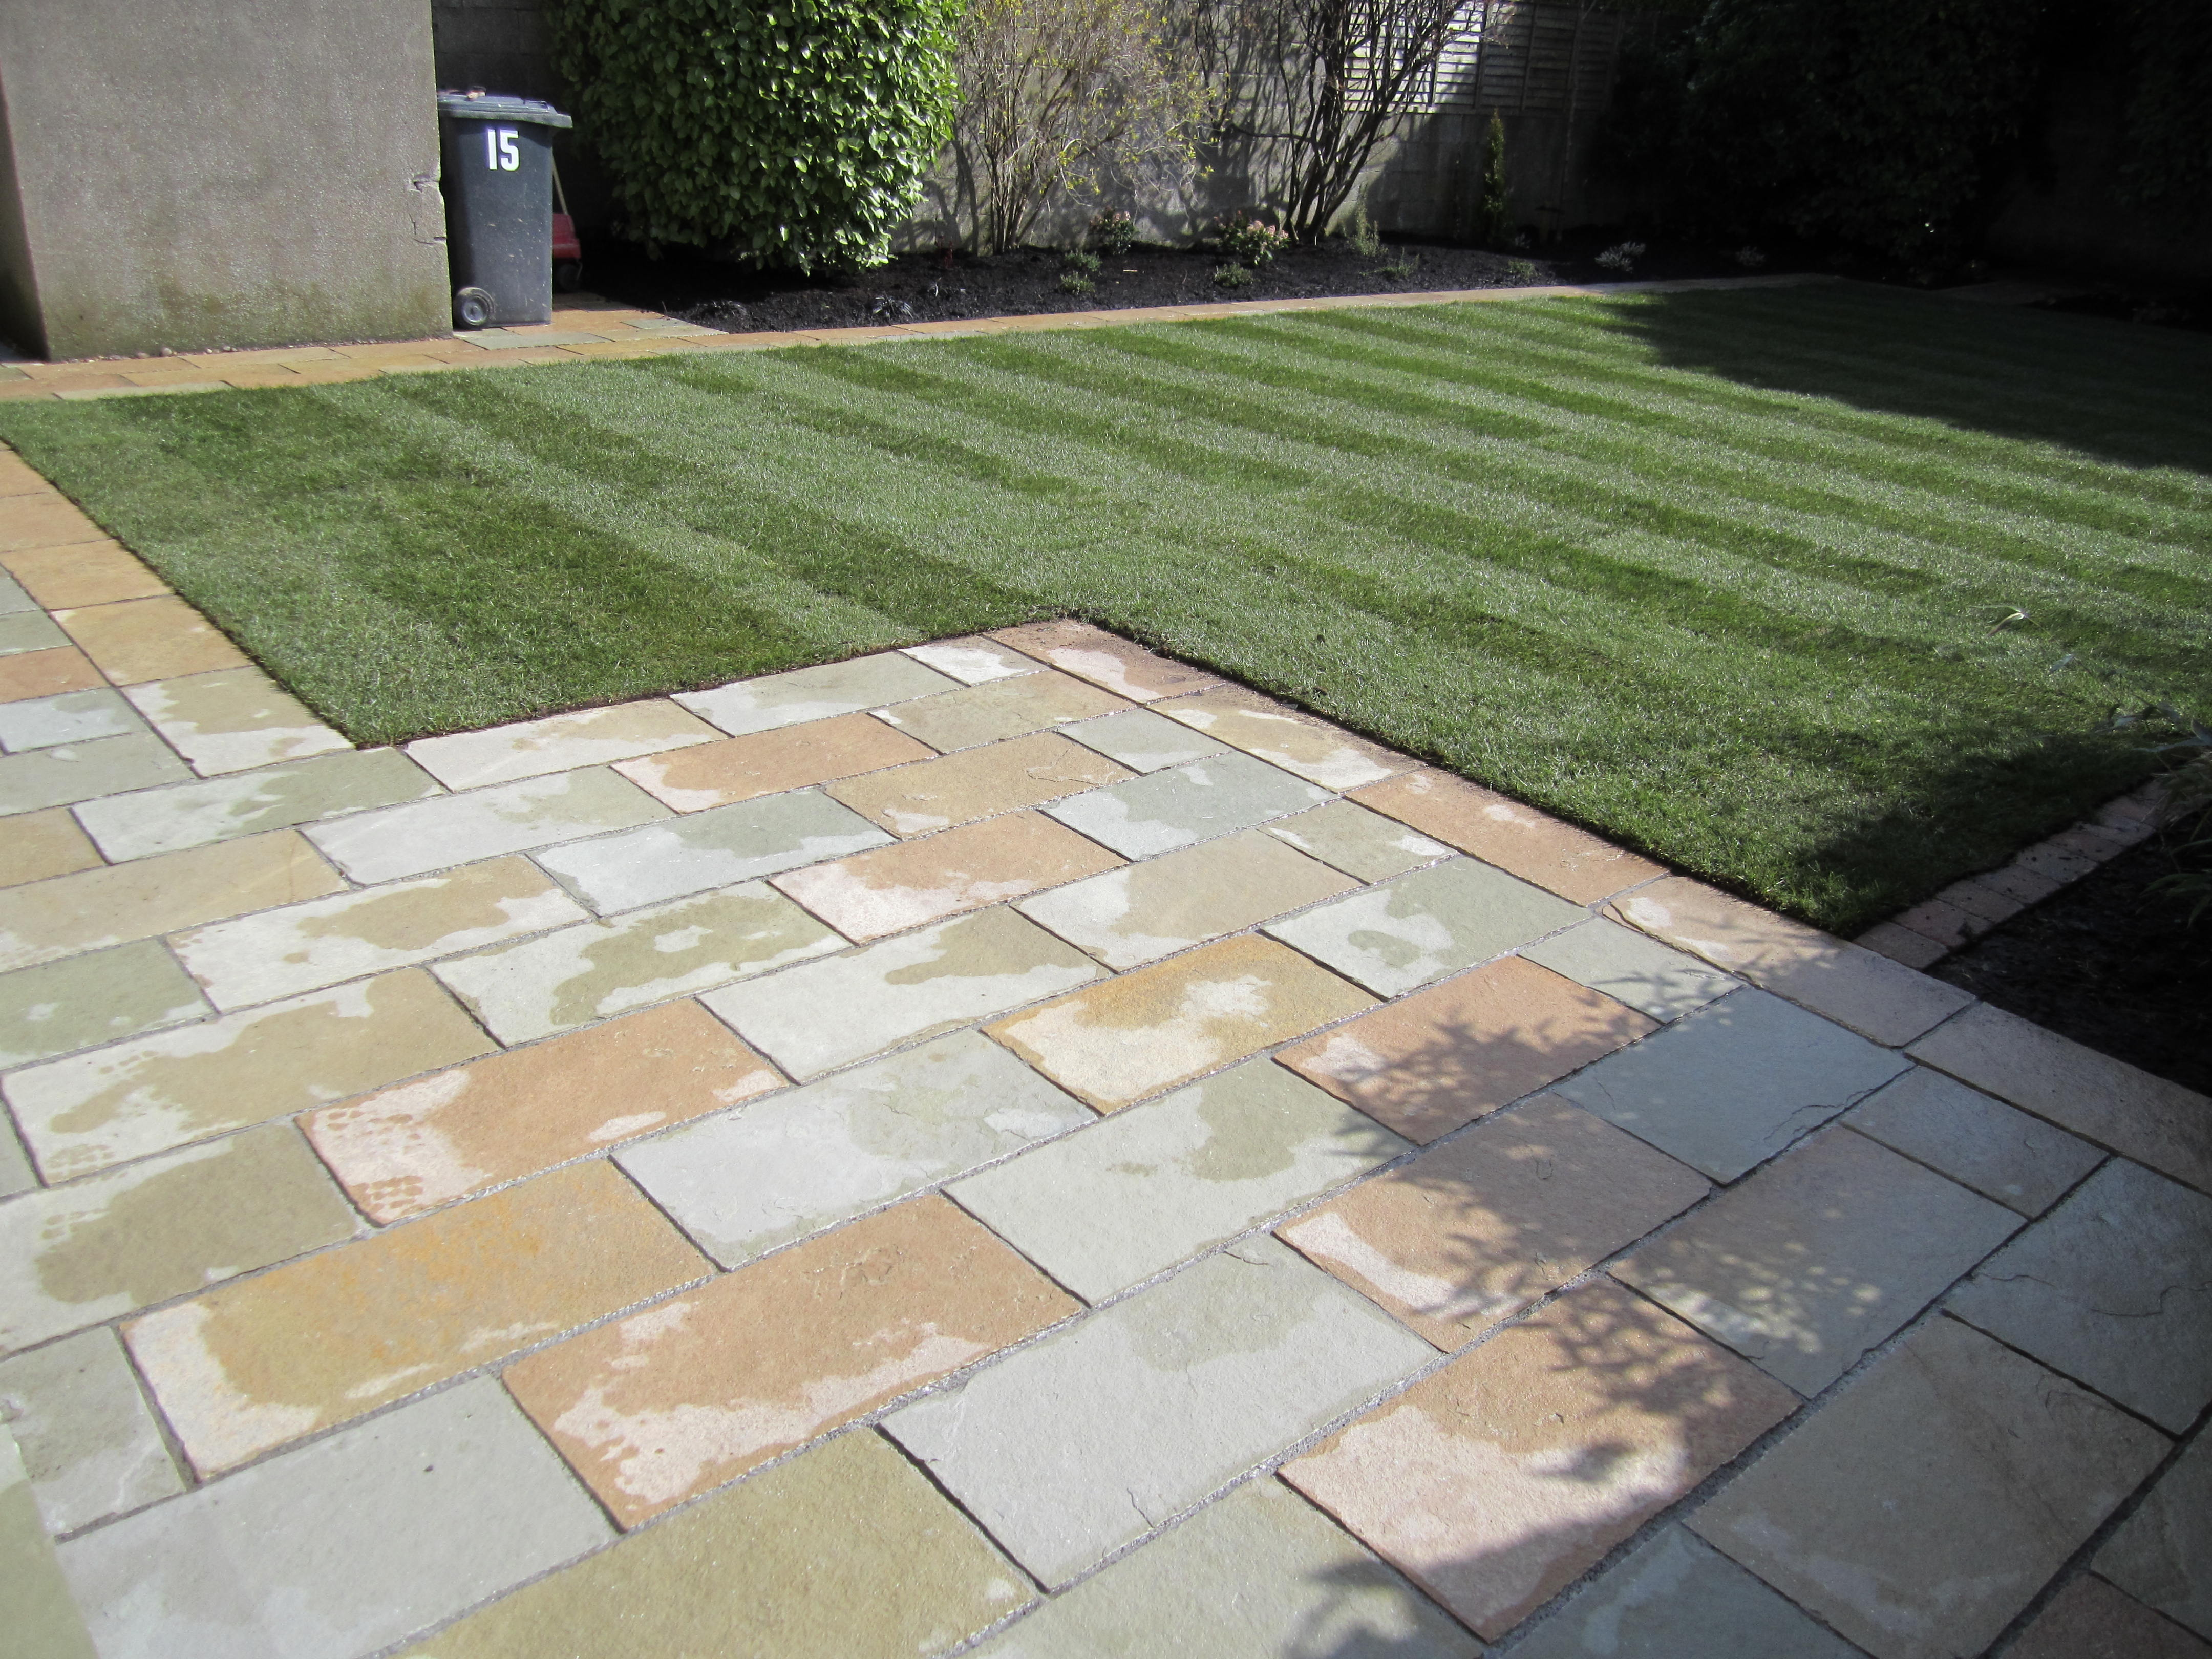 Landscaping Contract and Garden Design for Leopardstown Grove, South County Dublin